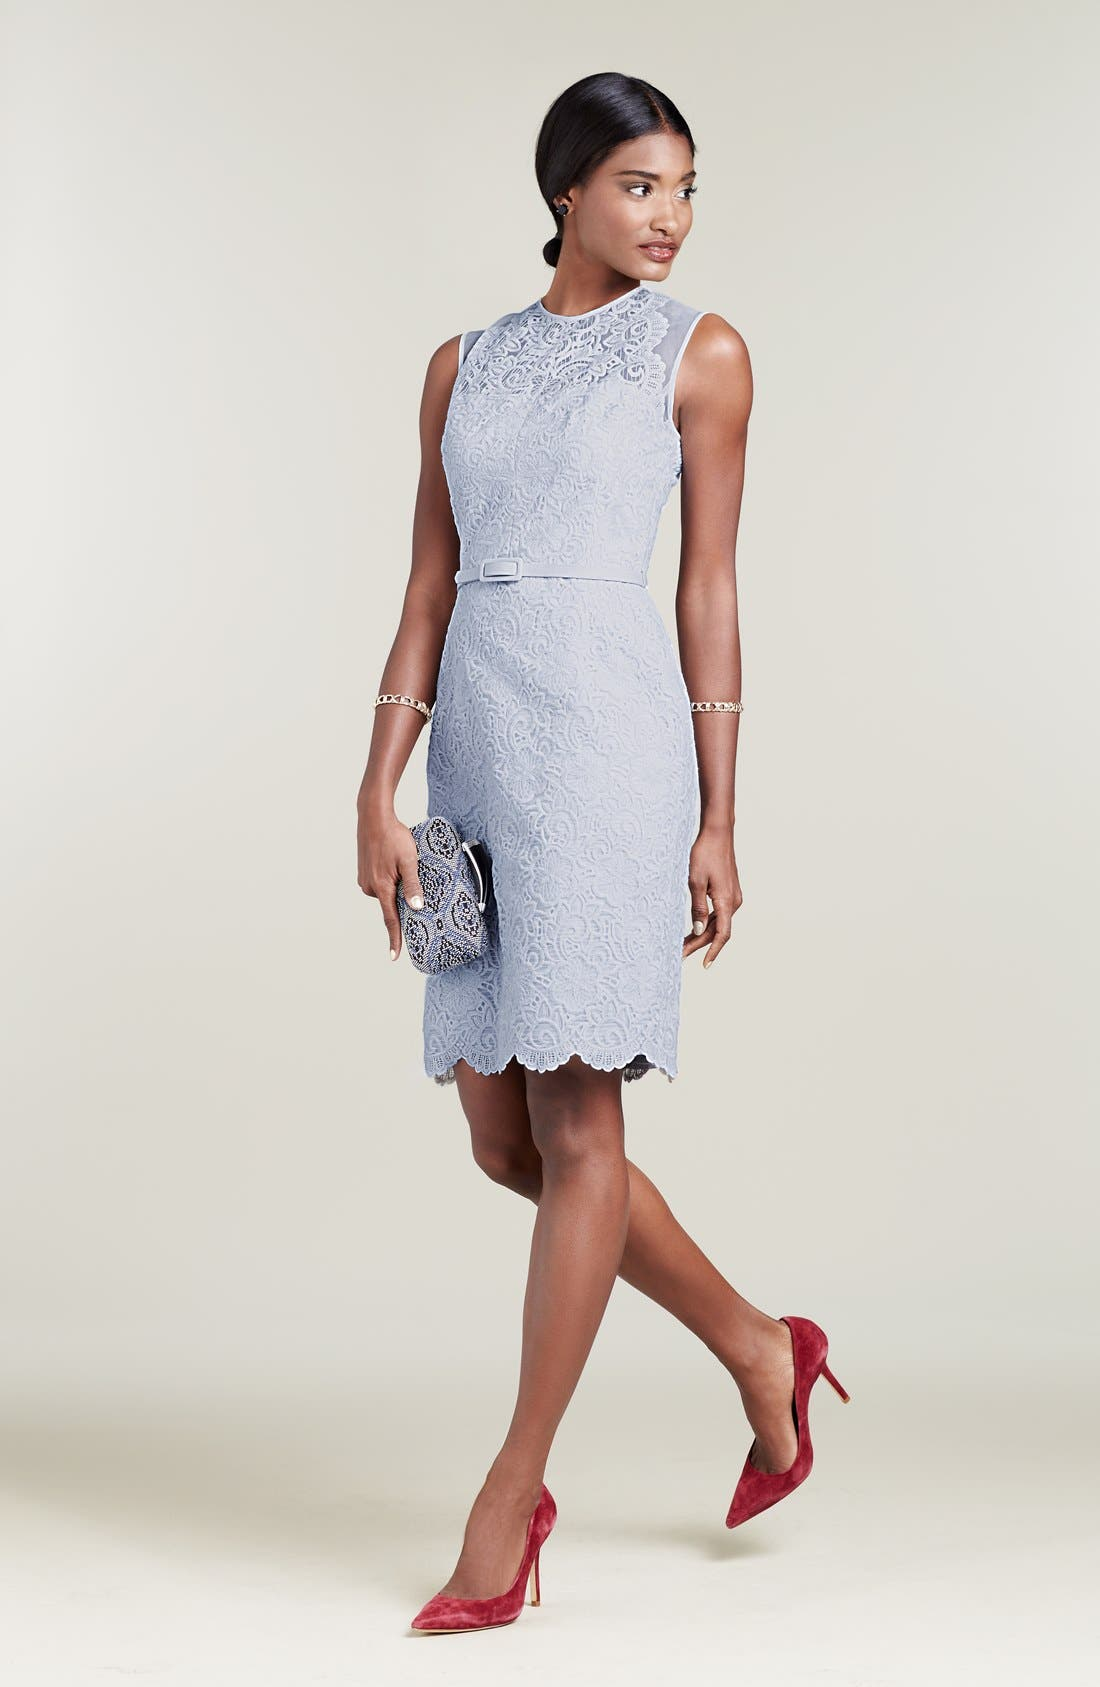 Main Image - Maggy London Sheath Dress & Accessories